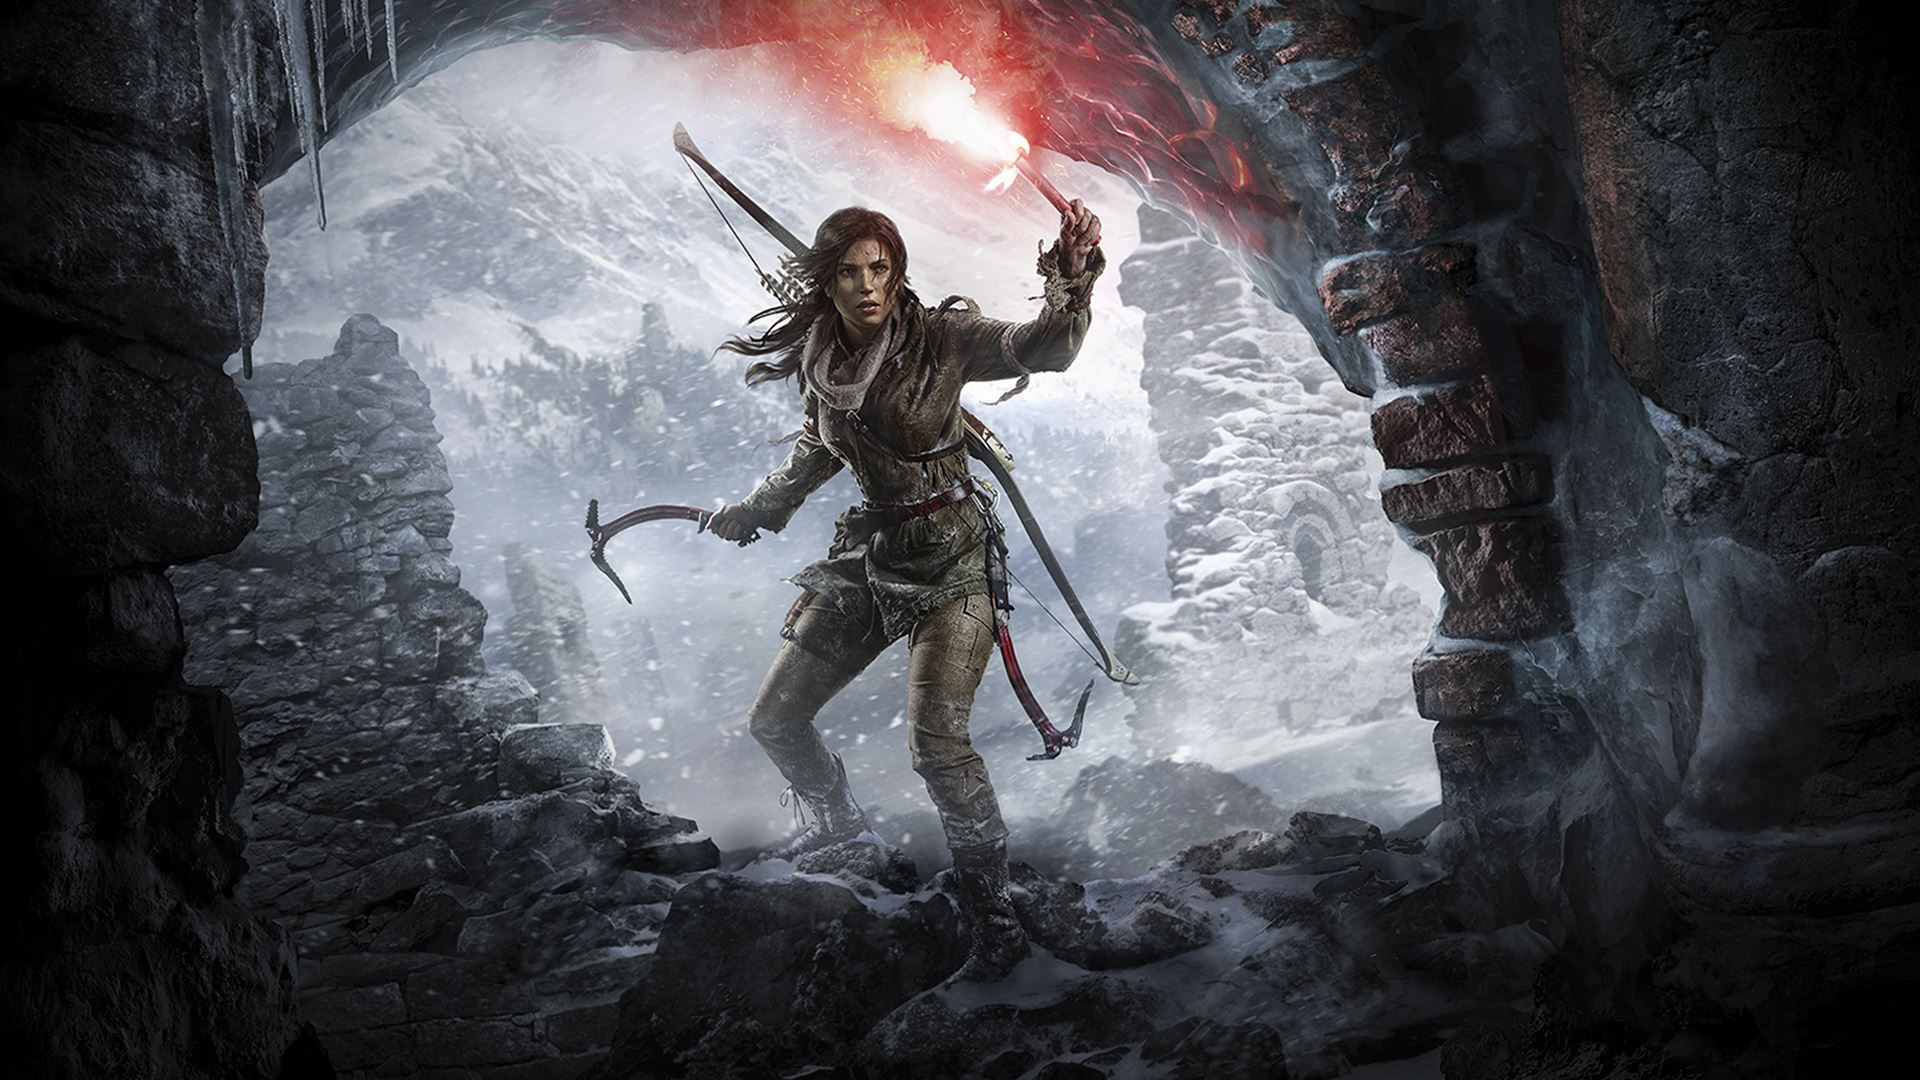 Could Tomb Raider be coming in 2017?